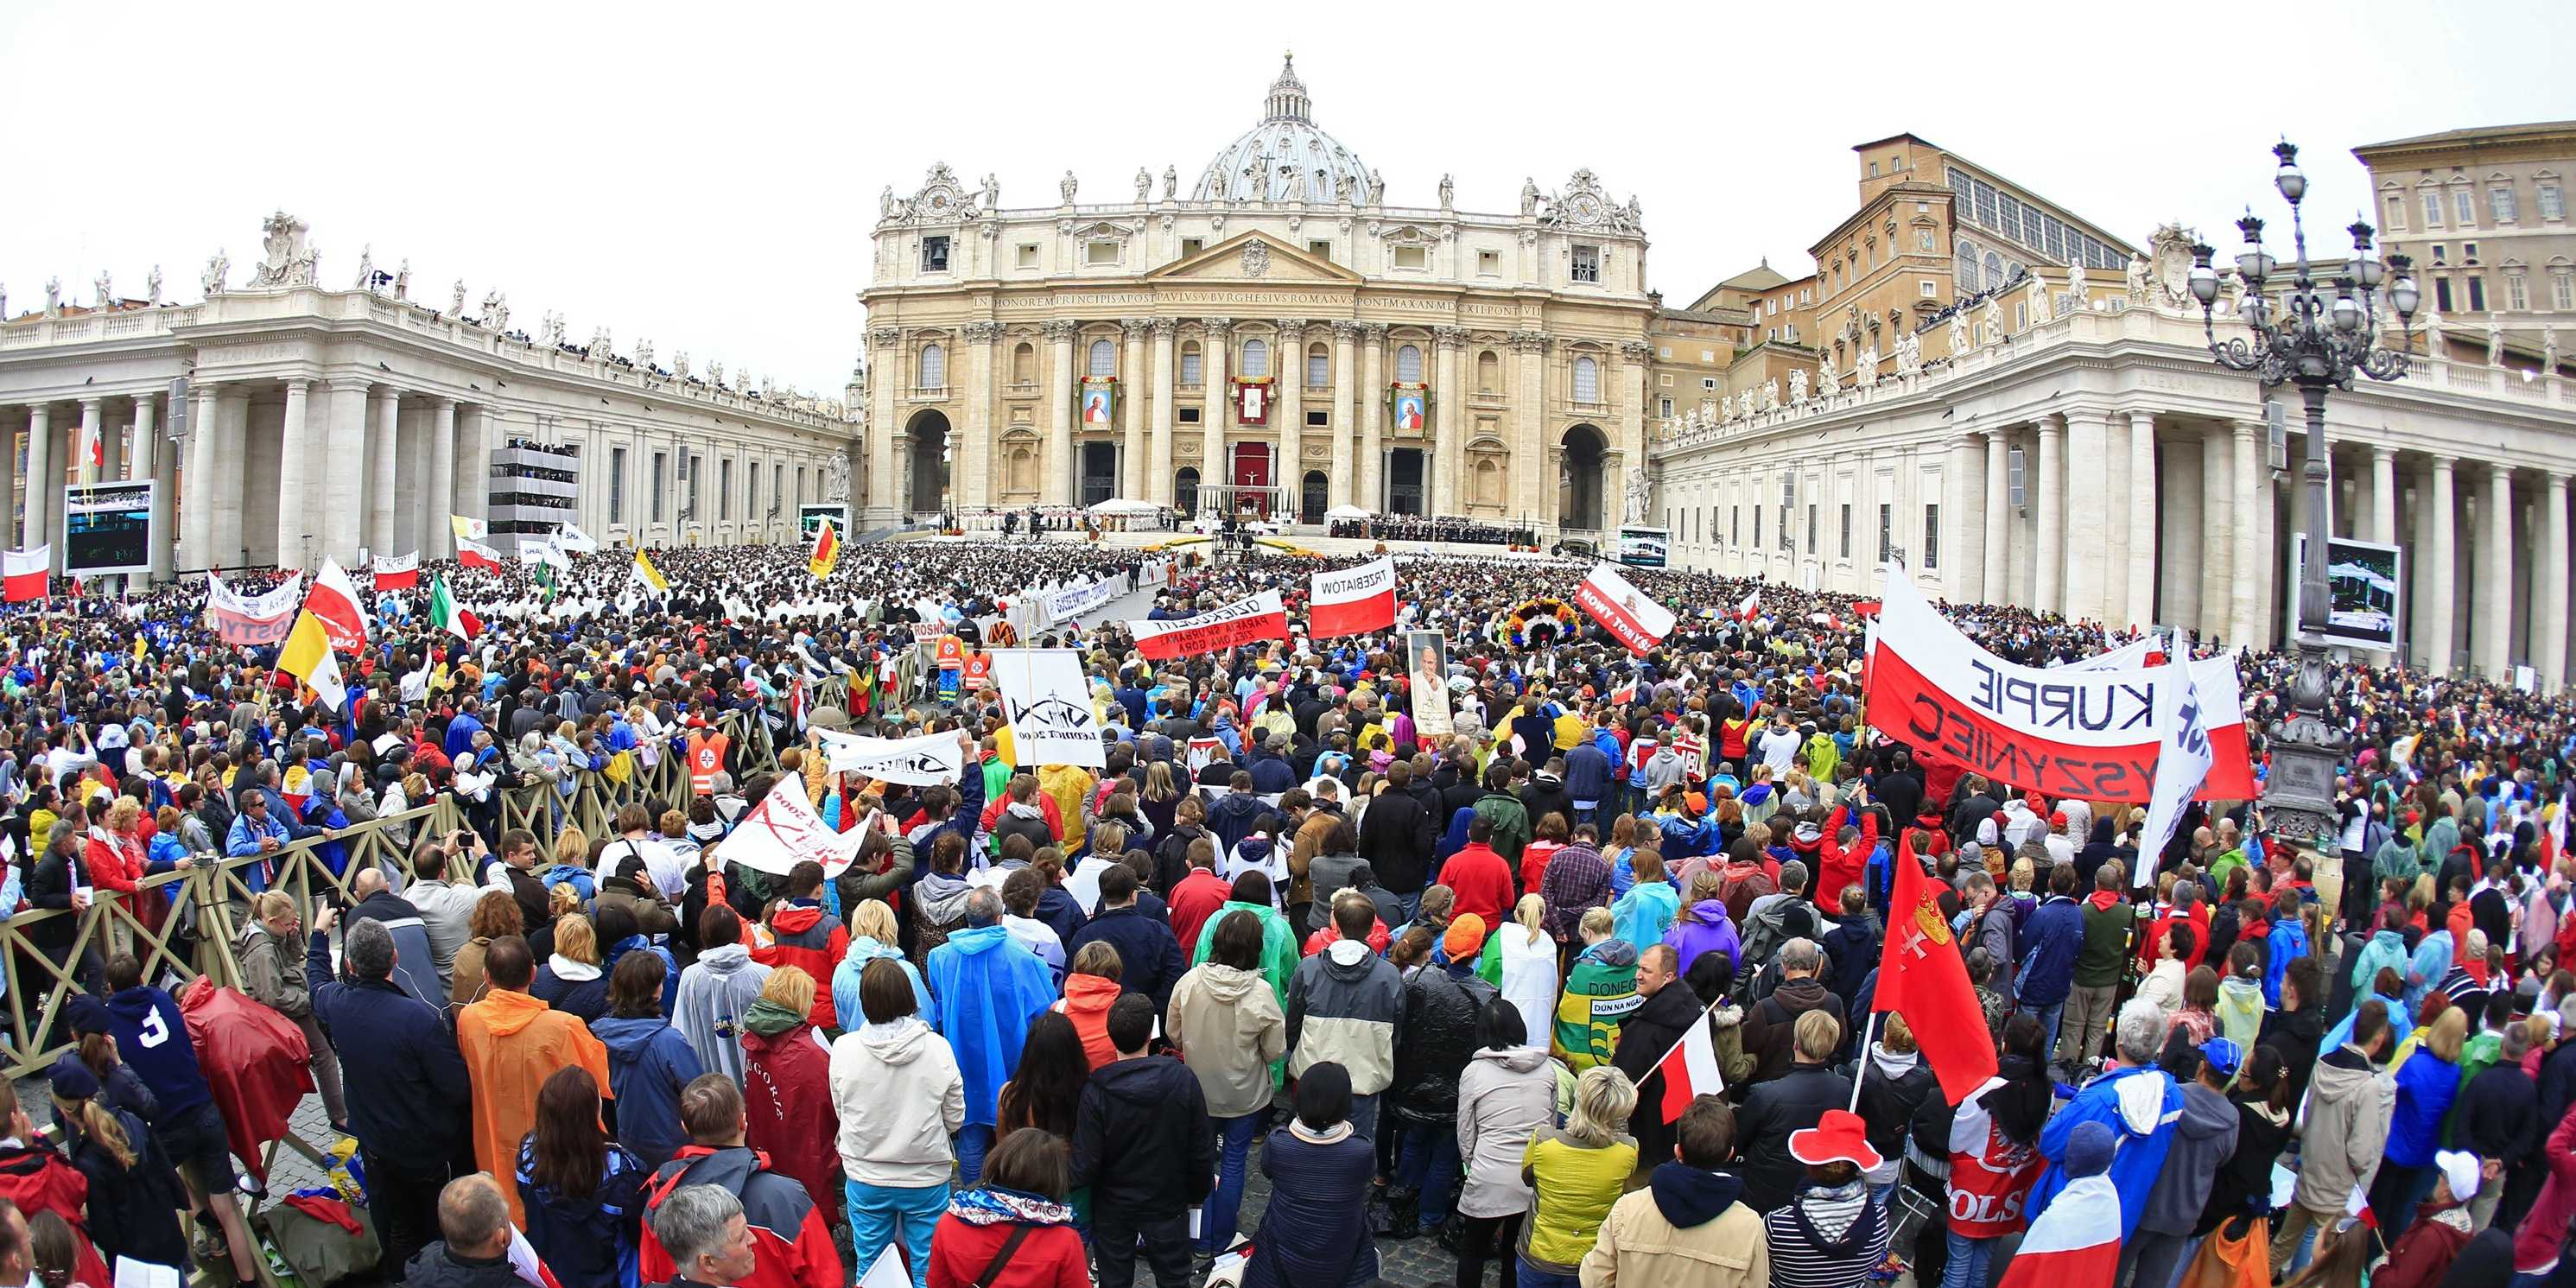 massive-crowd-gathers-to-witness-the-canonization-of-two-popes